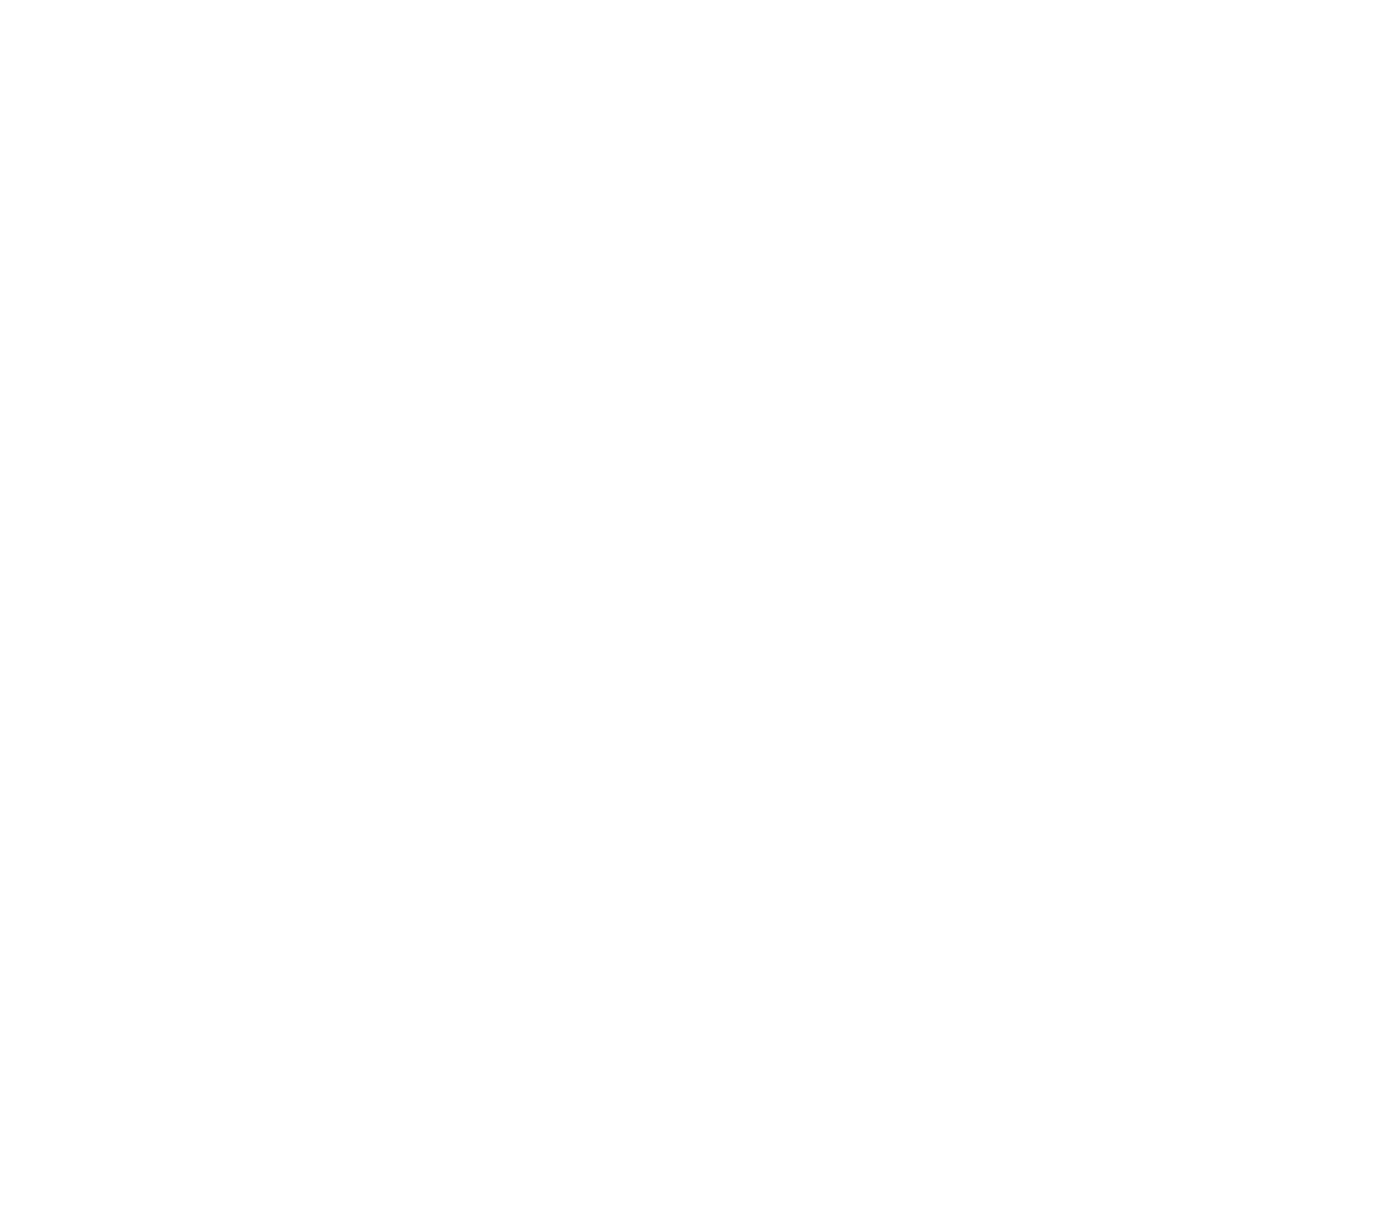 One Heart Warriors